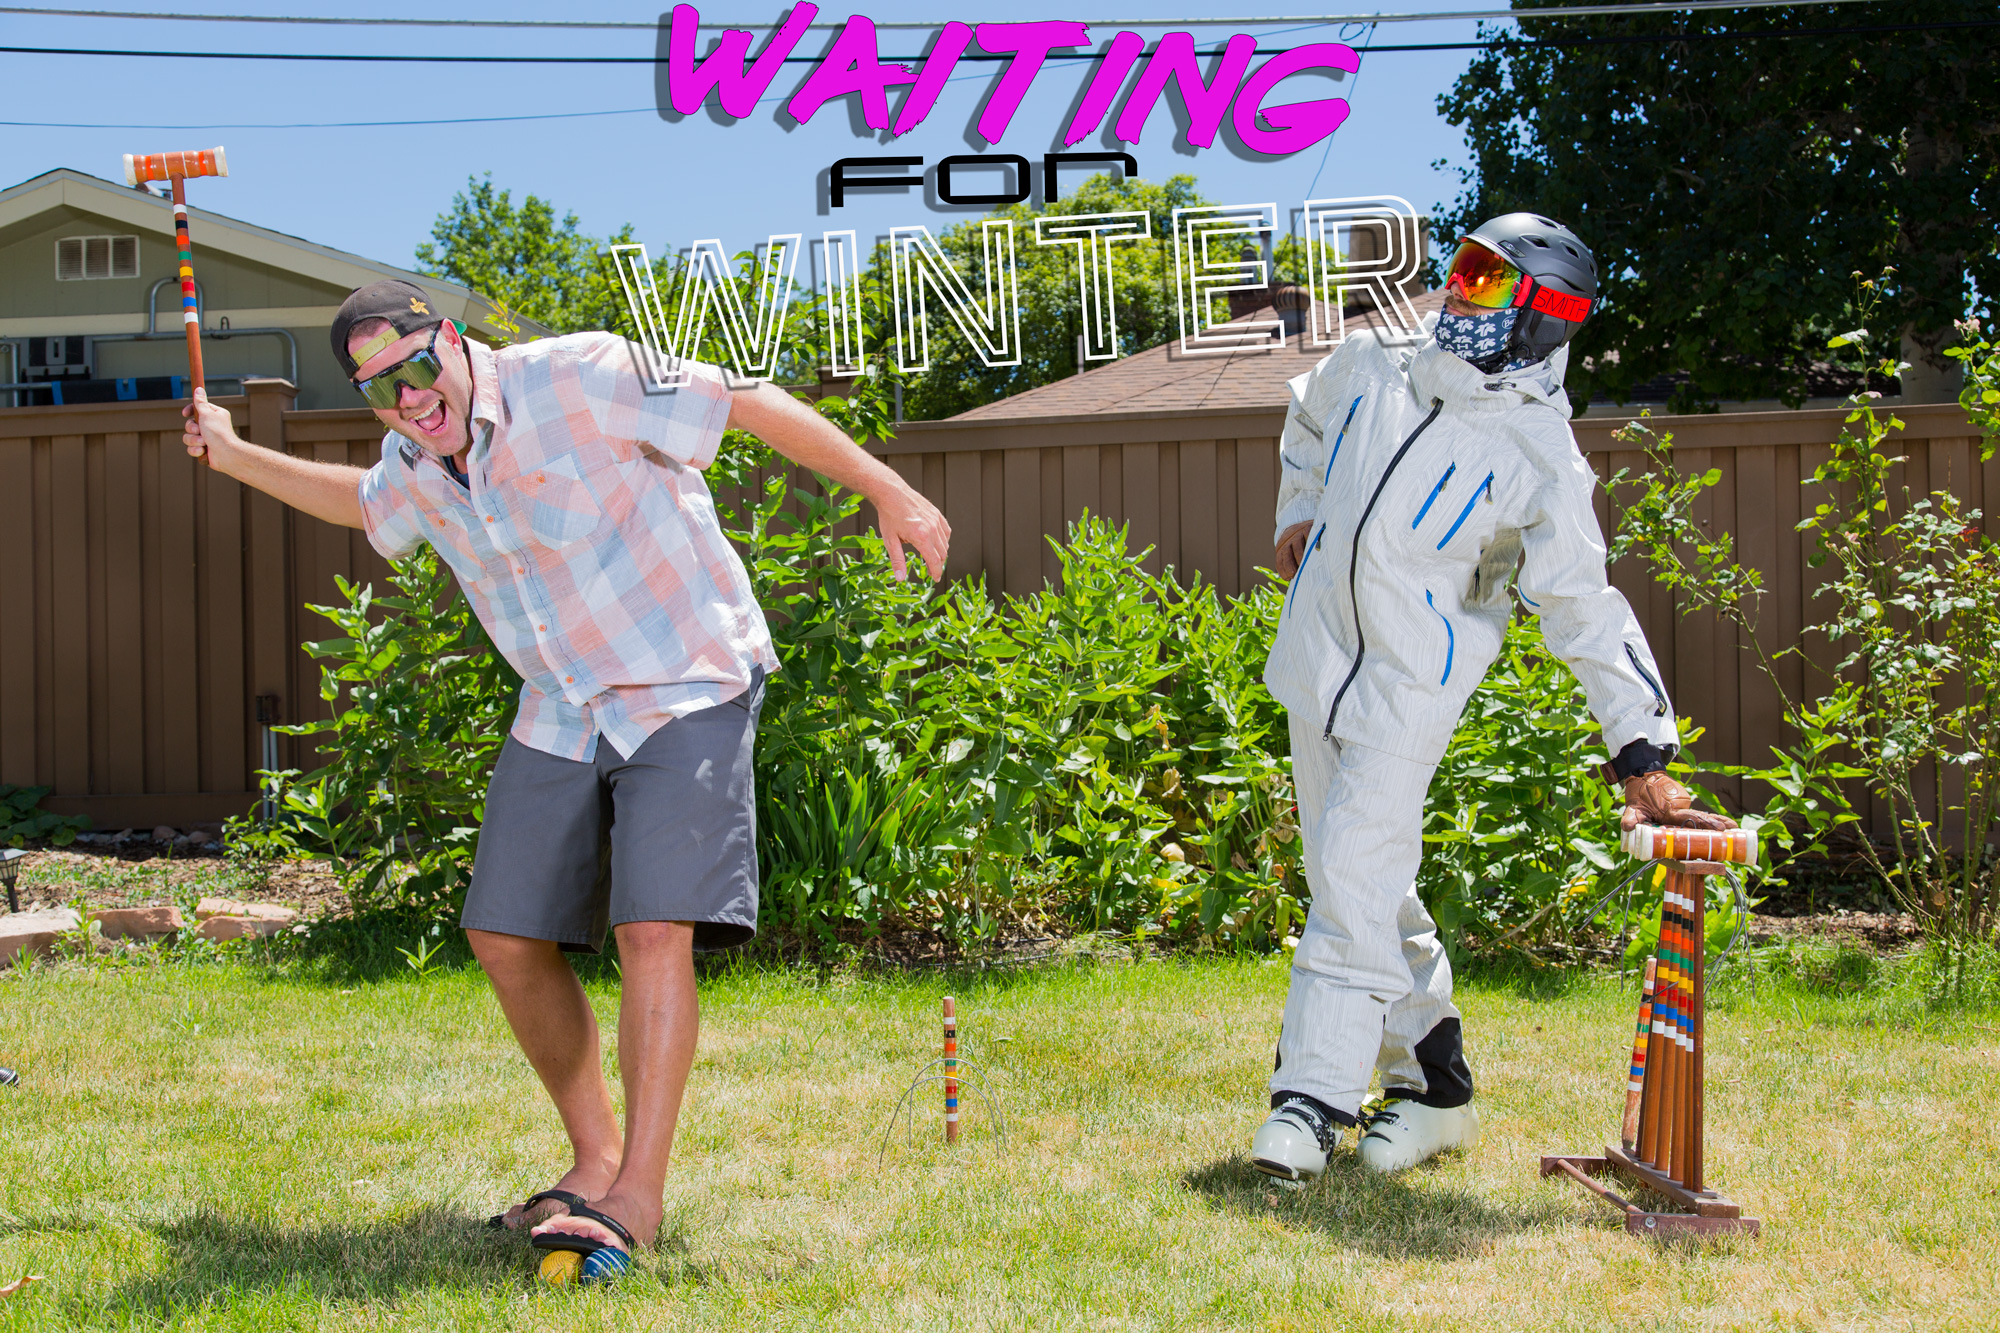 Waiting For Winter - Croquet